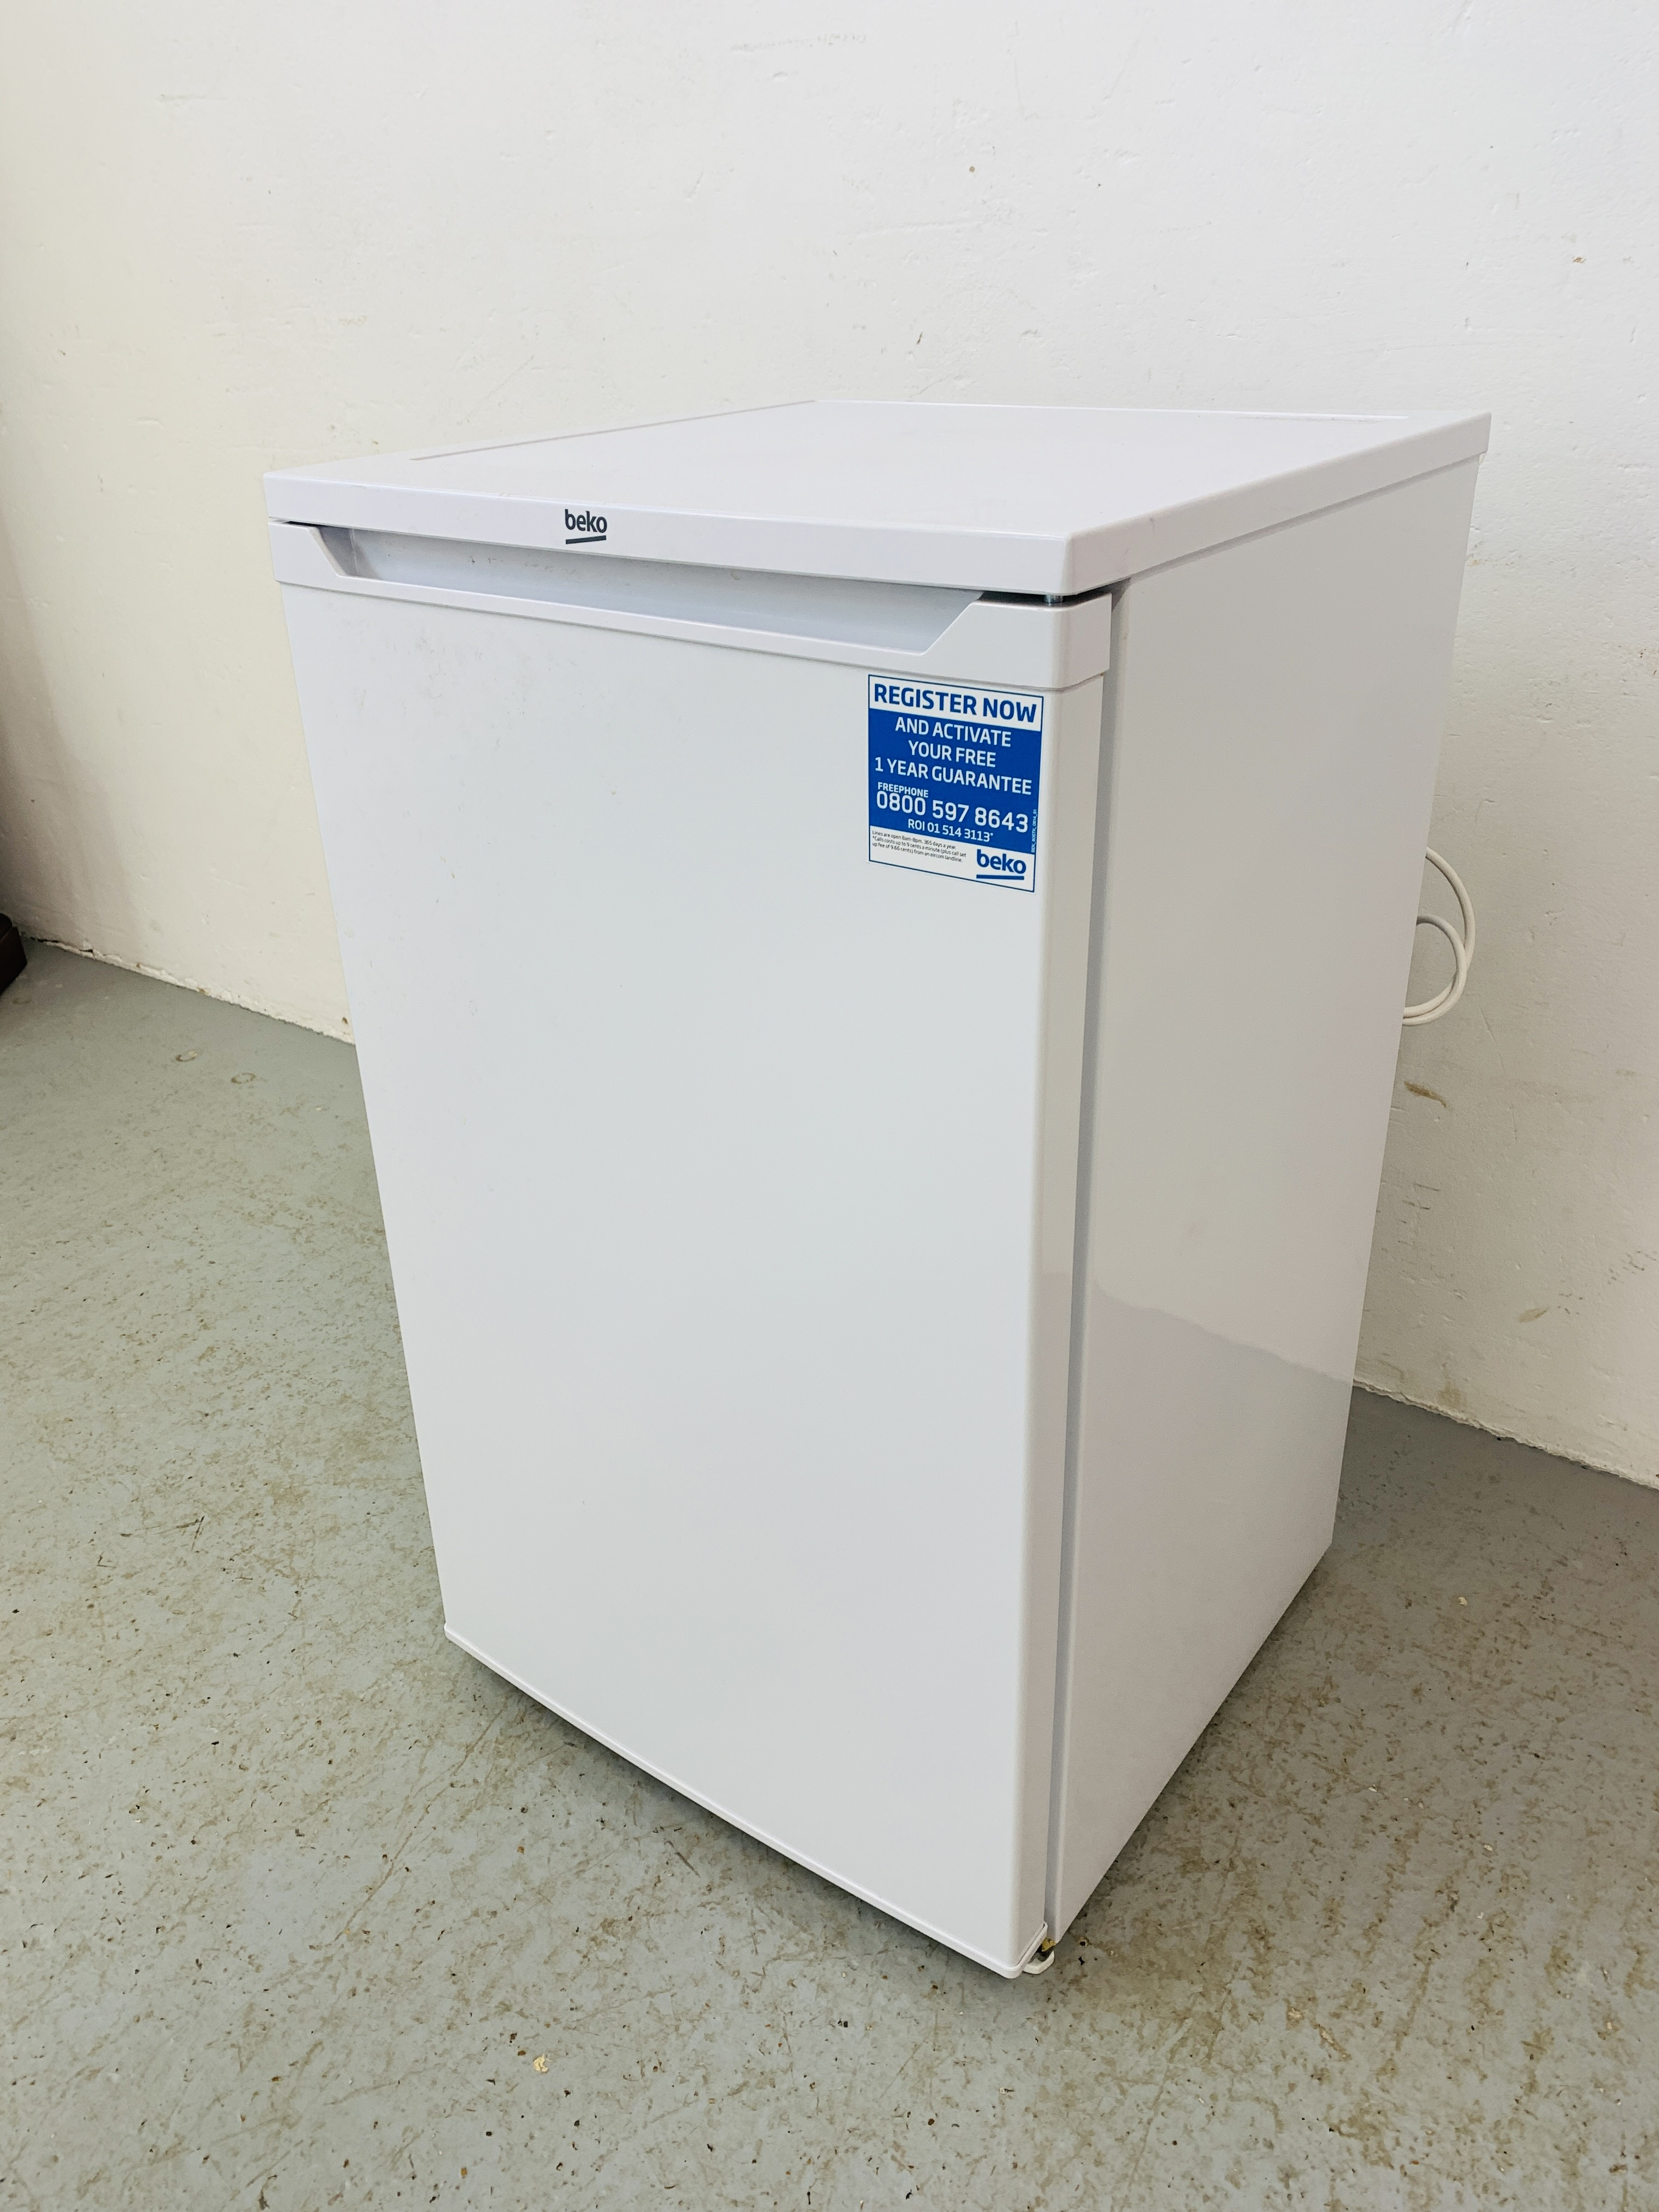 A BEKO UNDERCOUNTER FREEZER - SOLD AS SEEN - Image 4 of 6